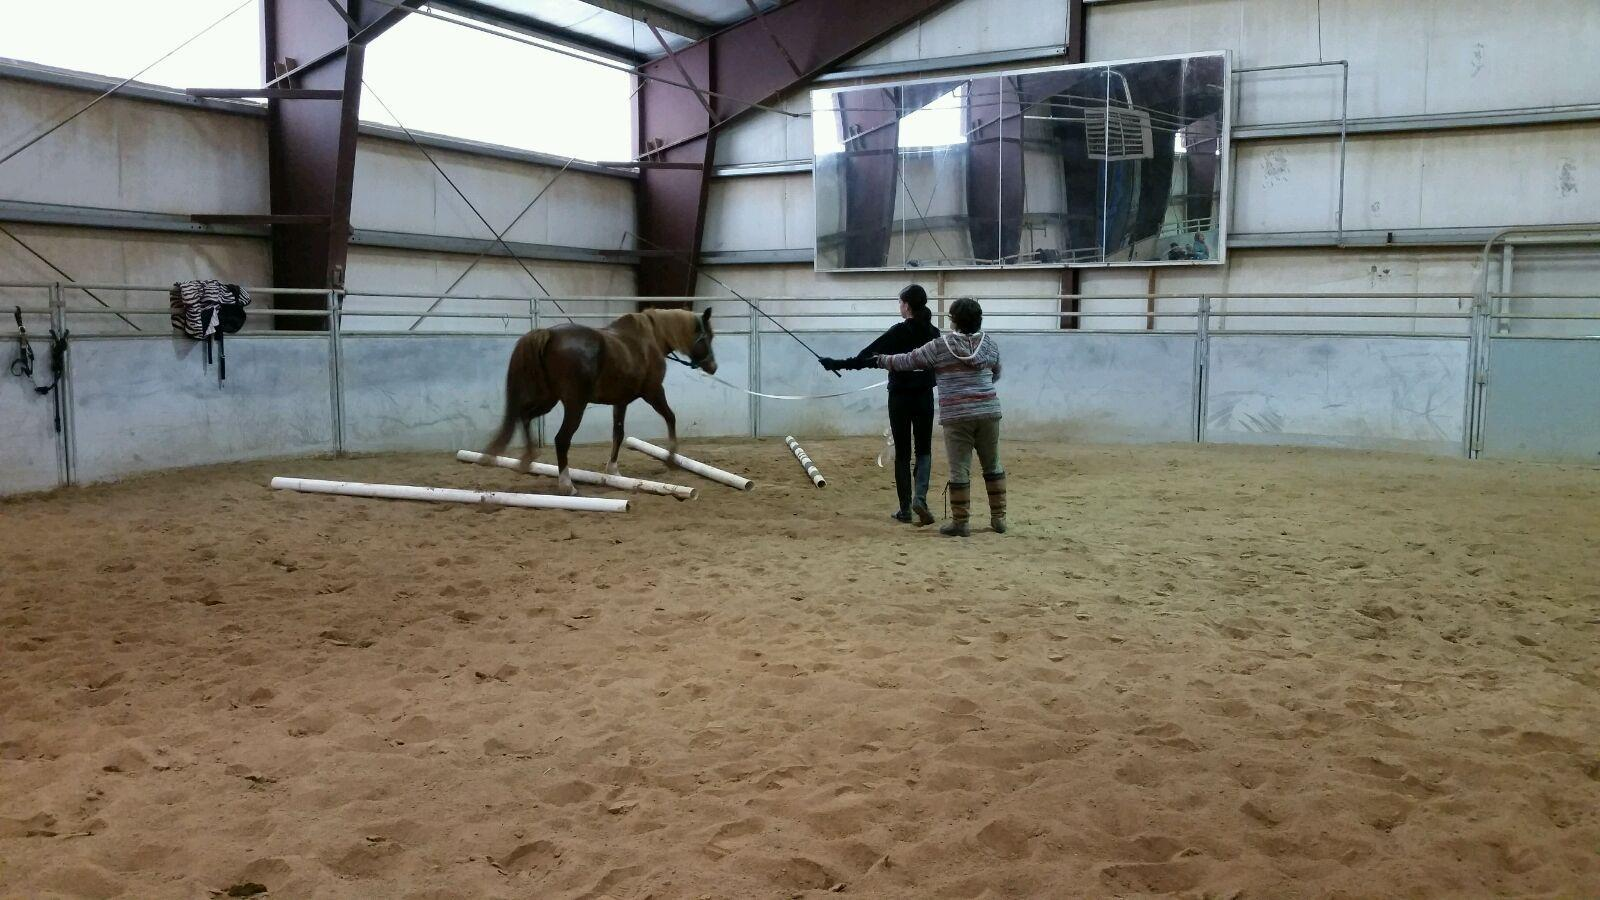 Lunging-Clinic-4.jpg